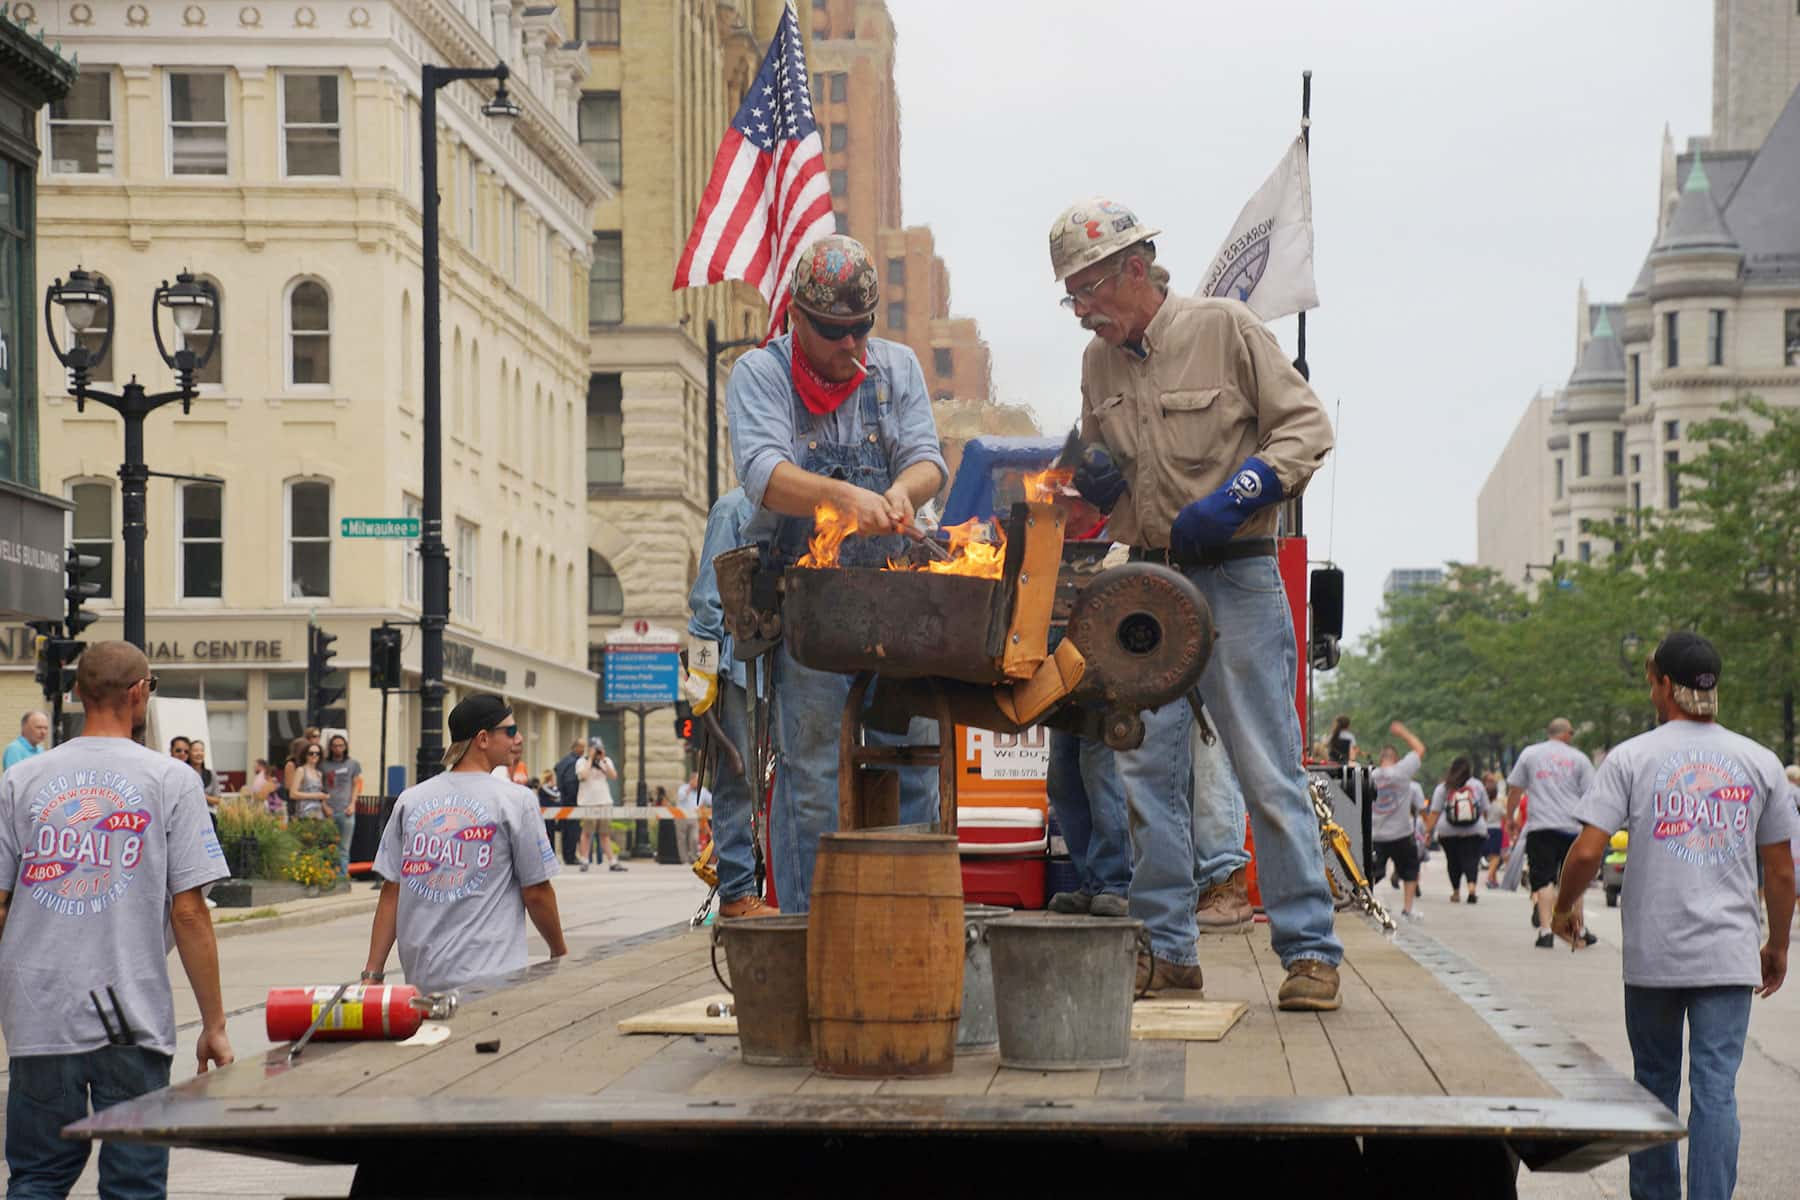 01_090417_labordayparade_0908